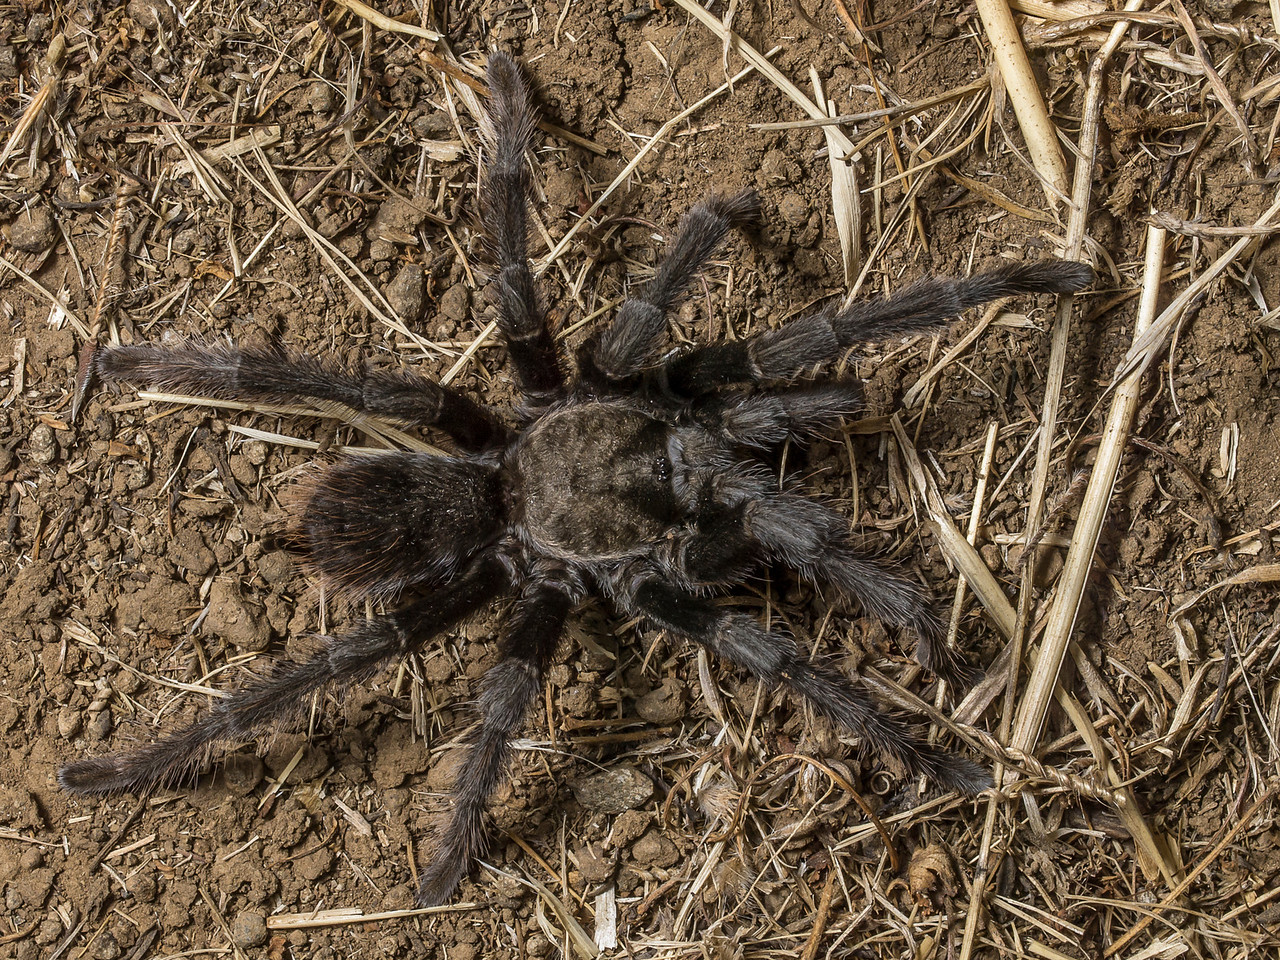 Tarantula (and a very nice one at that, not bedraggled as you often see them) seen on a night hike at Russian Ridge OSP.